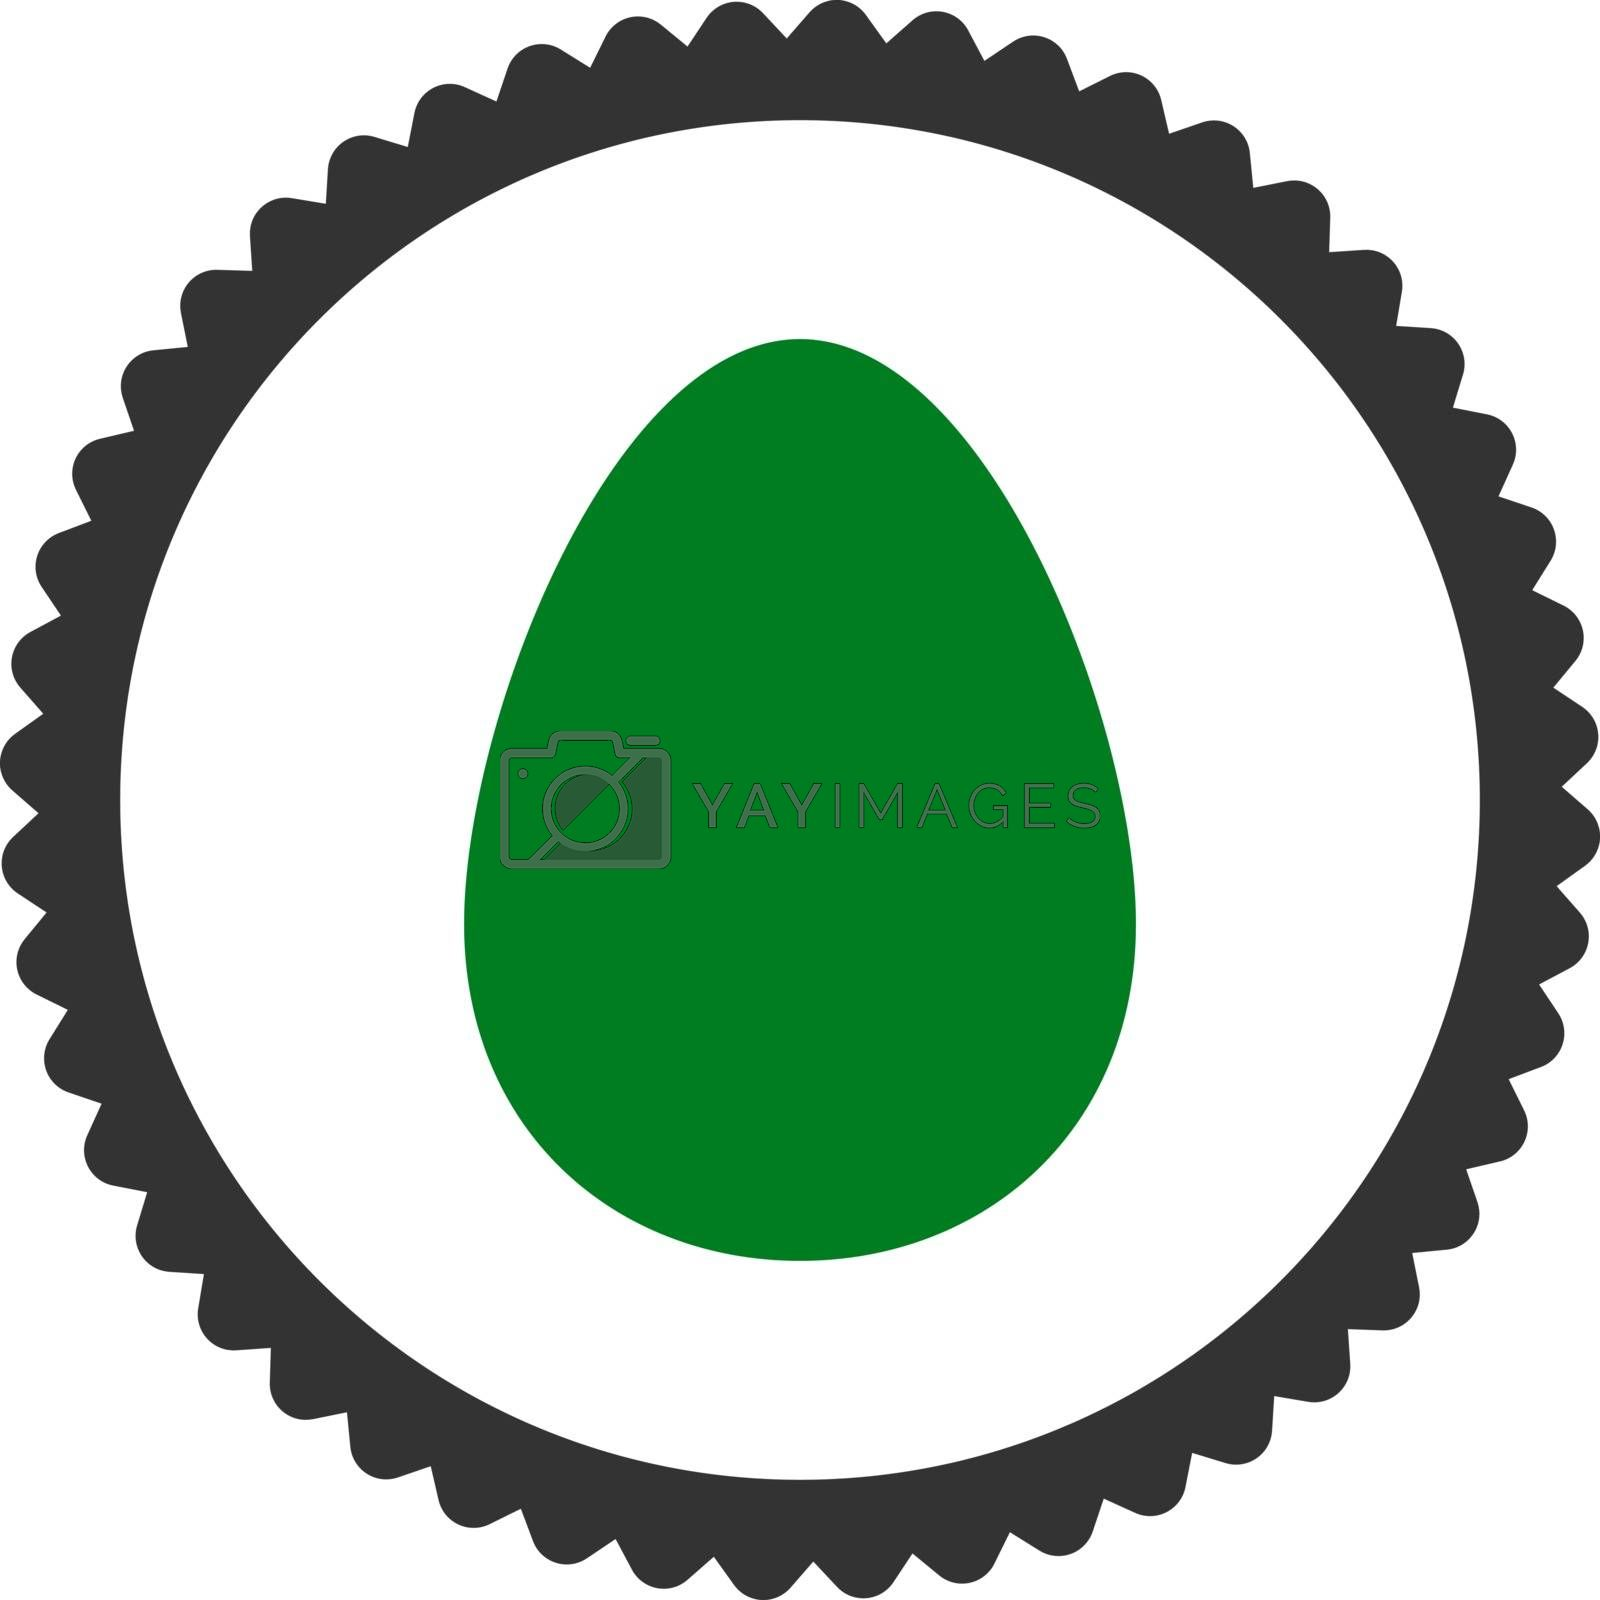 Egg flat green and gray colors round stamp icon by Aha-Soft